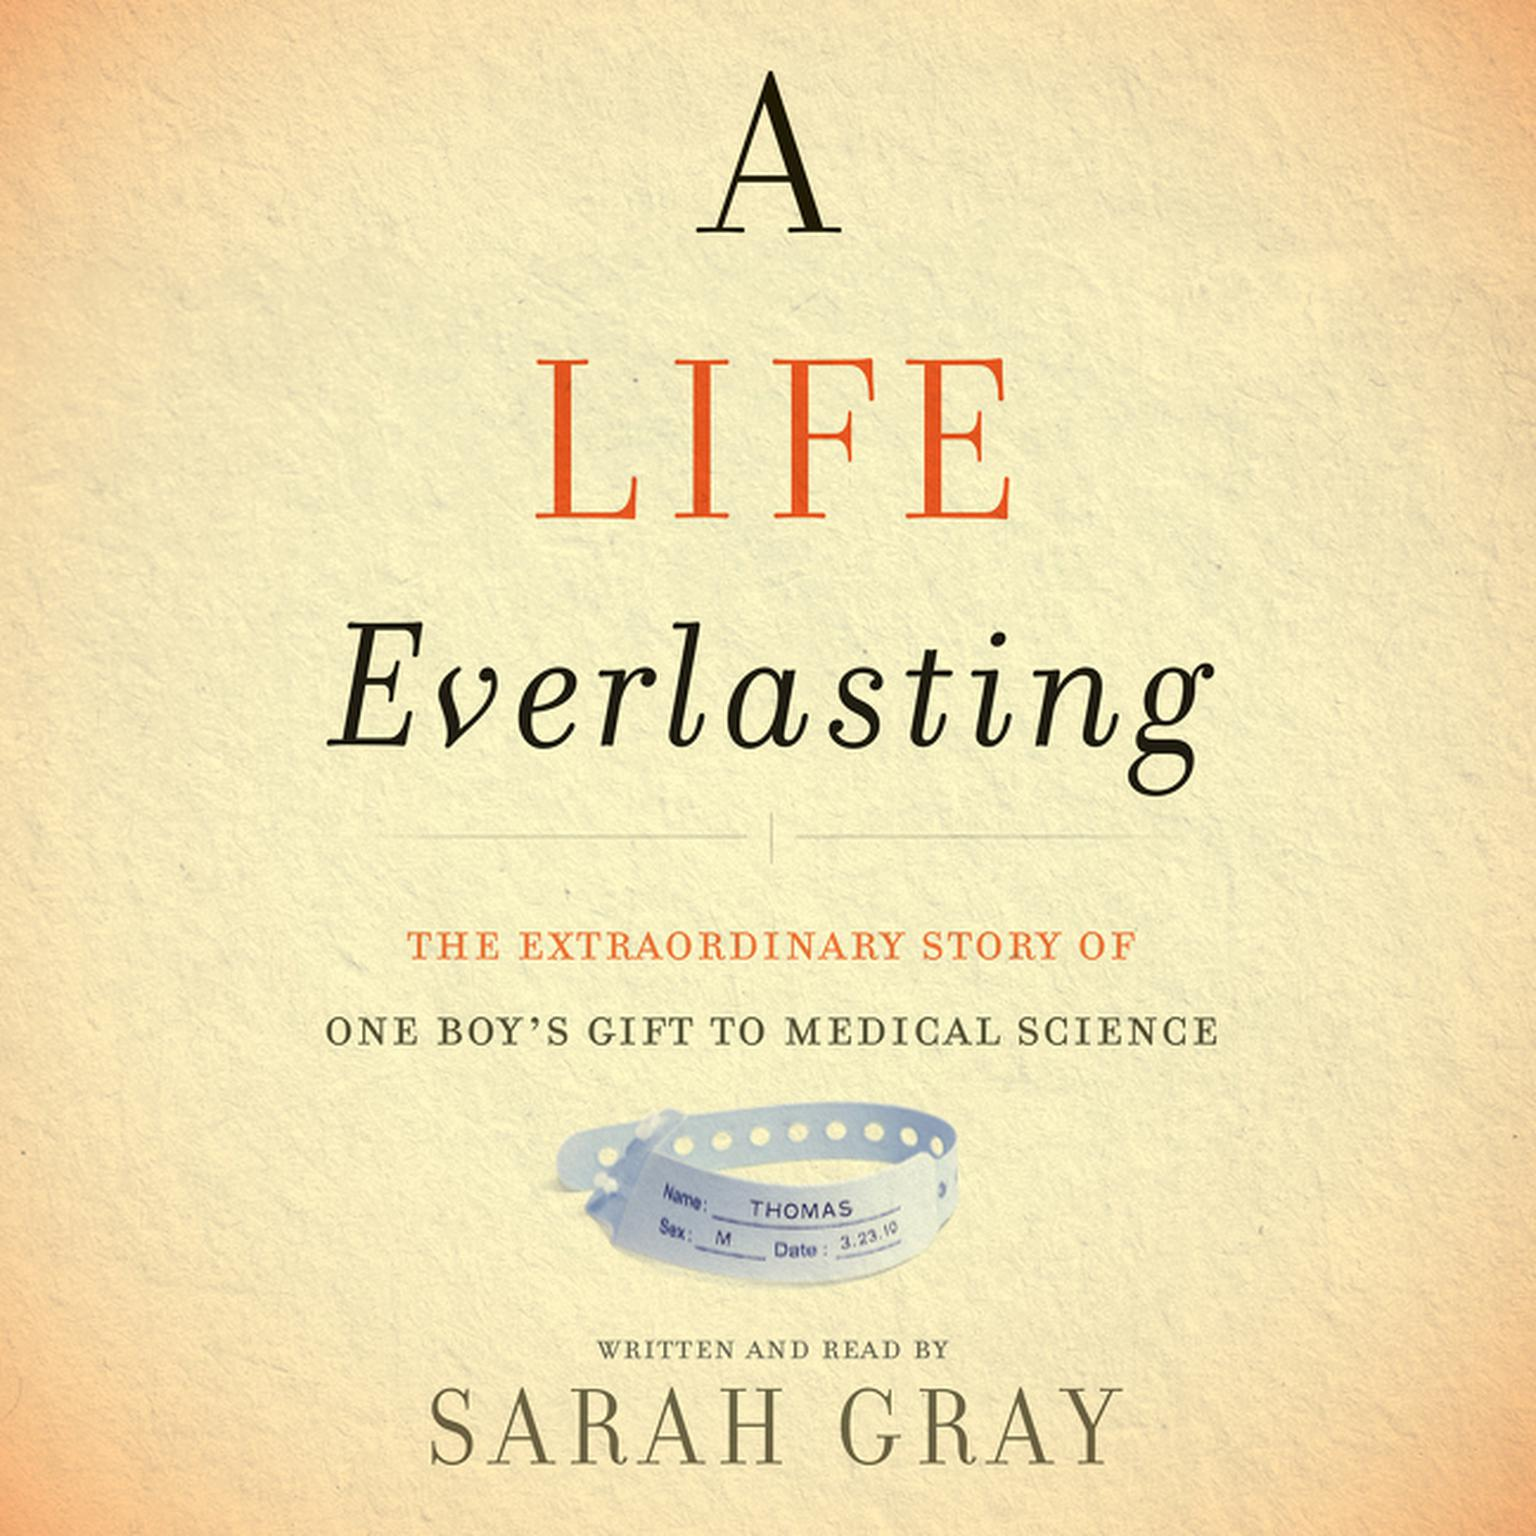 Printable A Life Everlasting: The Extraordinary Story of One Boy's Gift to Medical Science Audiobook Cover Art